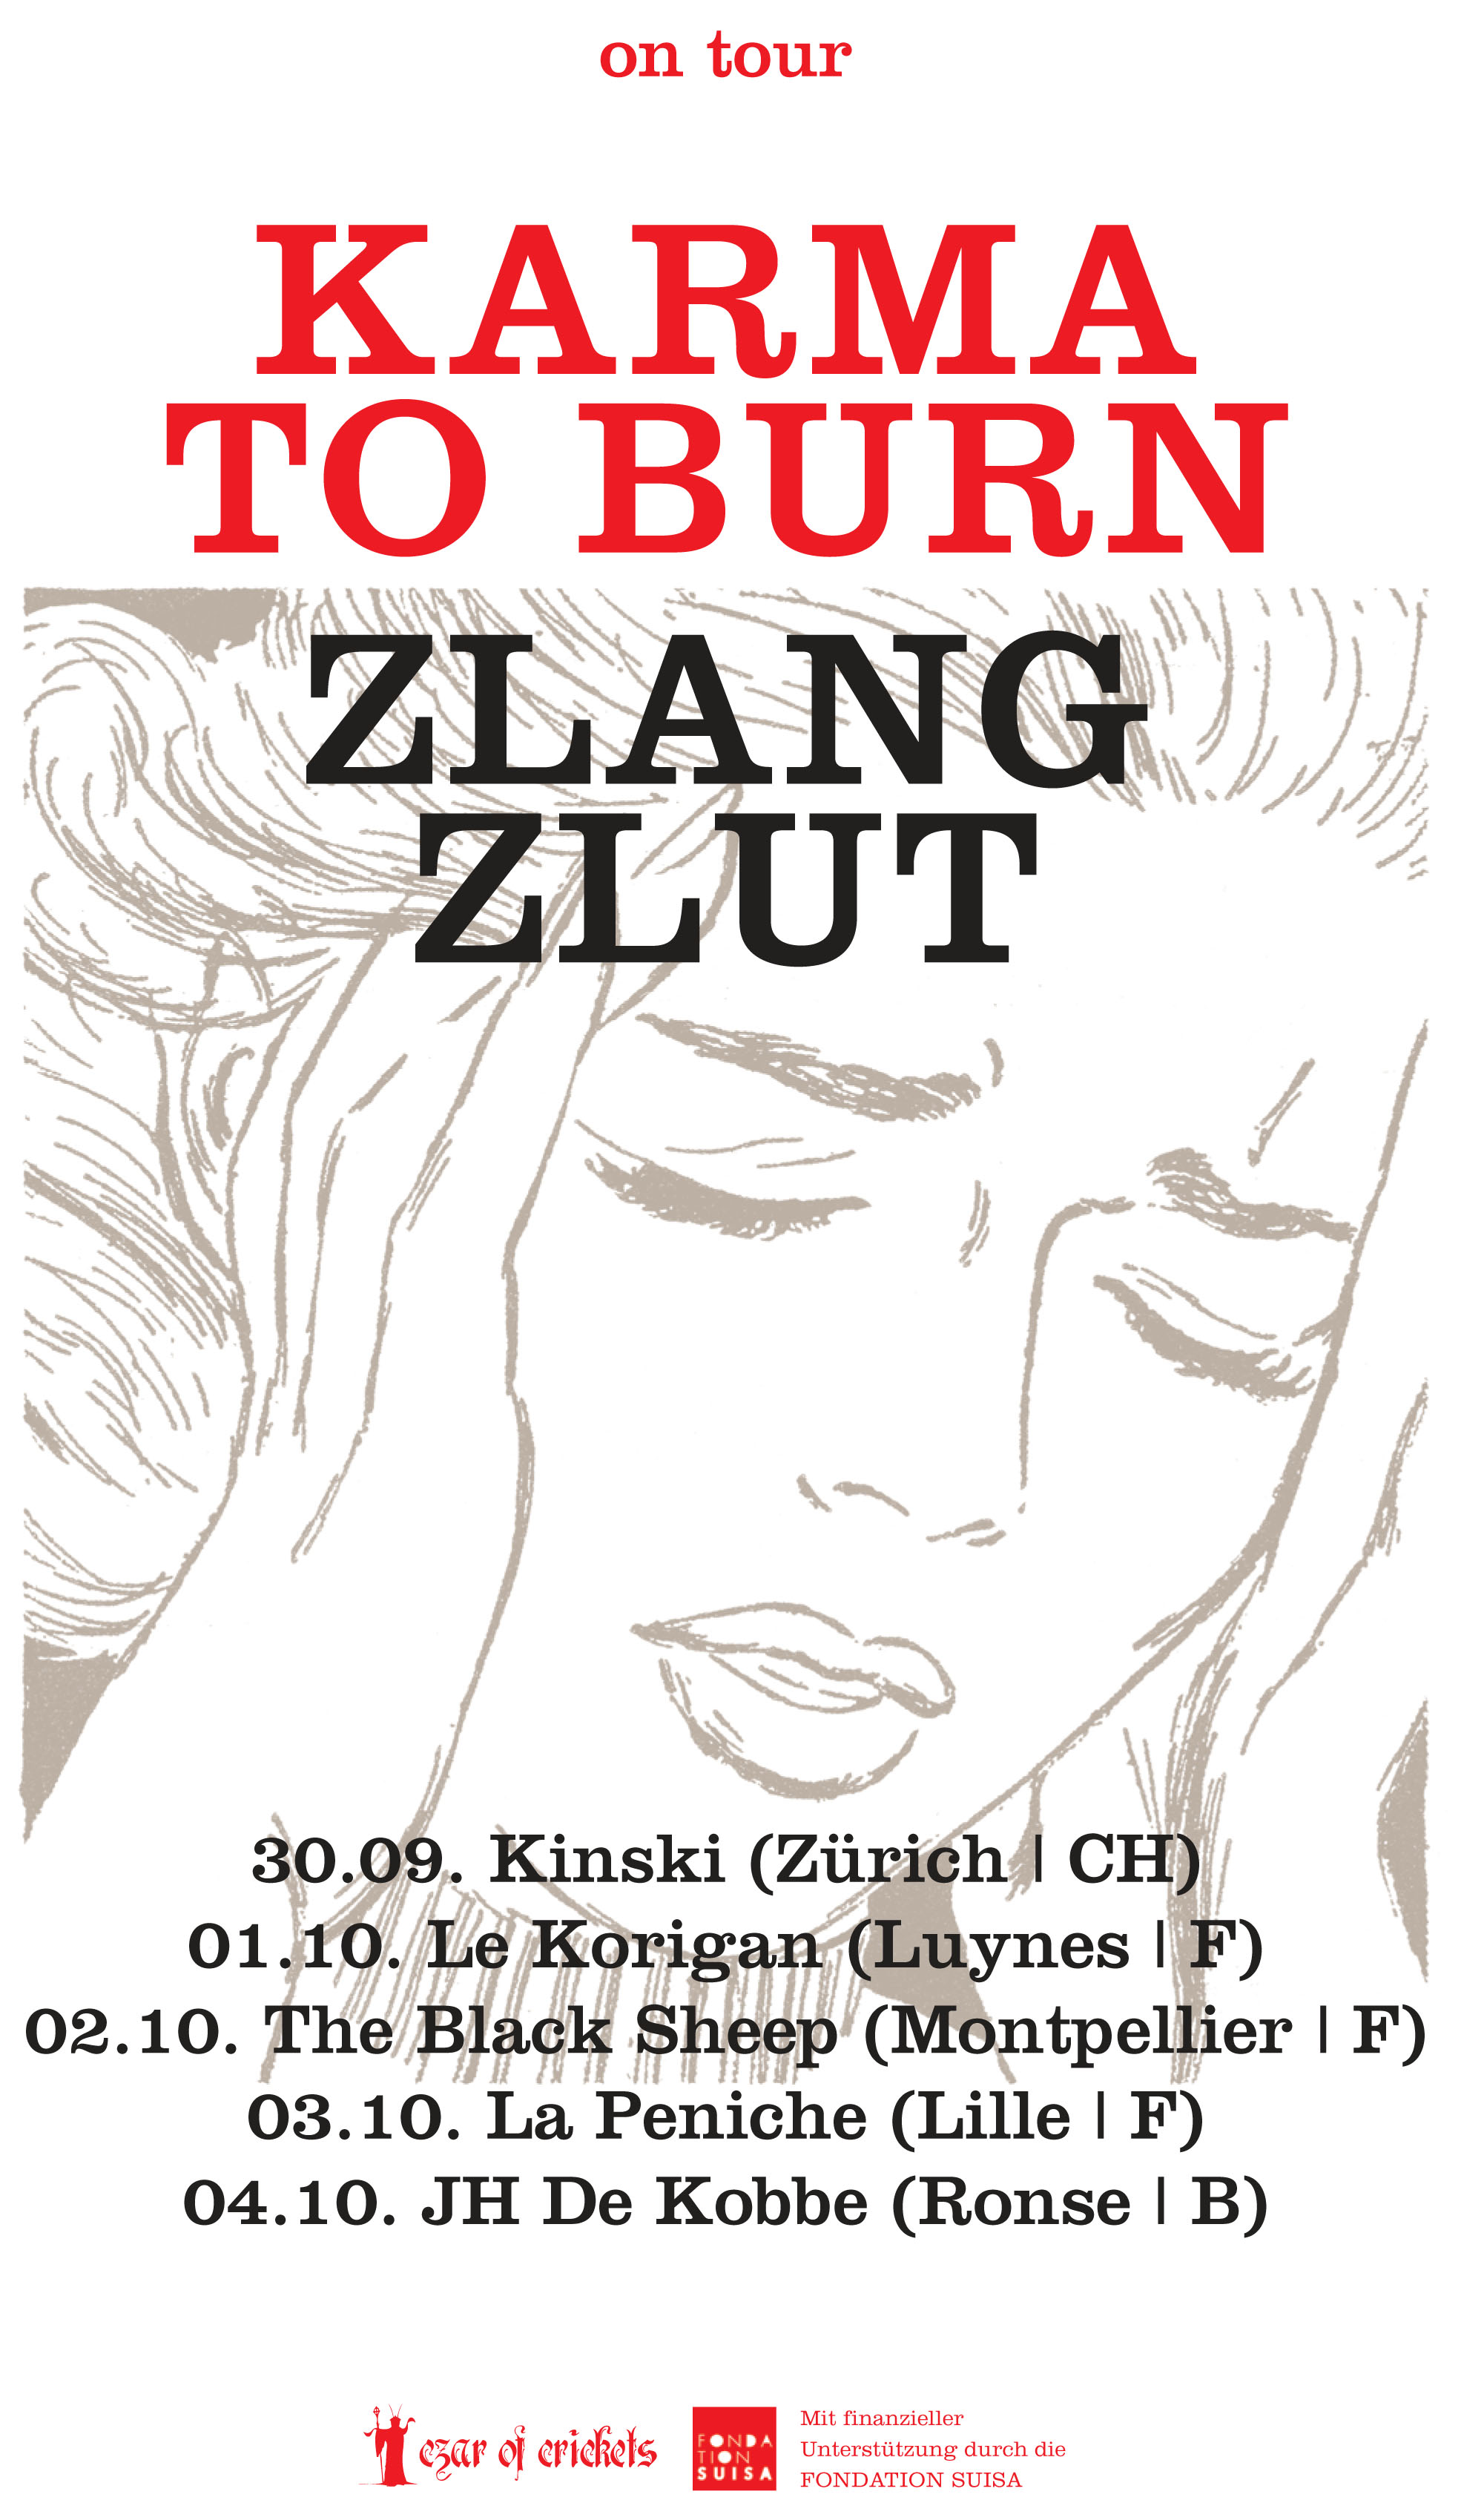 ZZ Flyer KTB-Tour14 L2-3